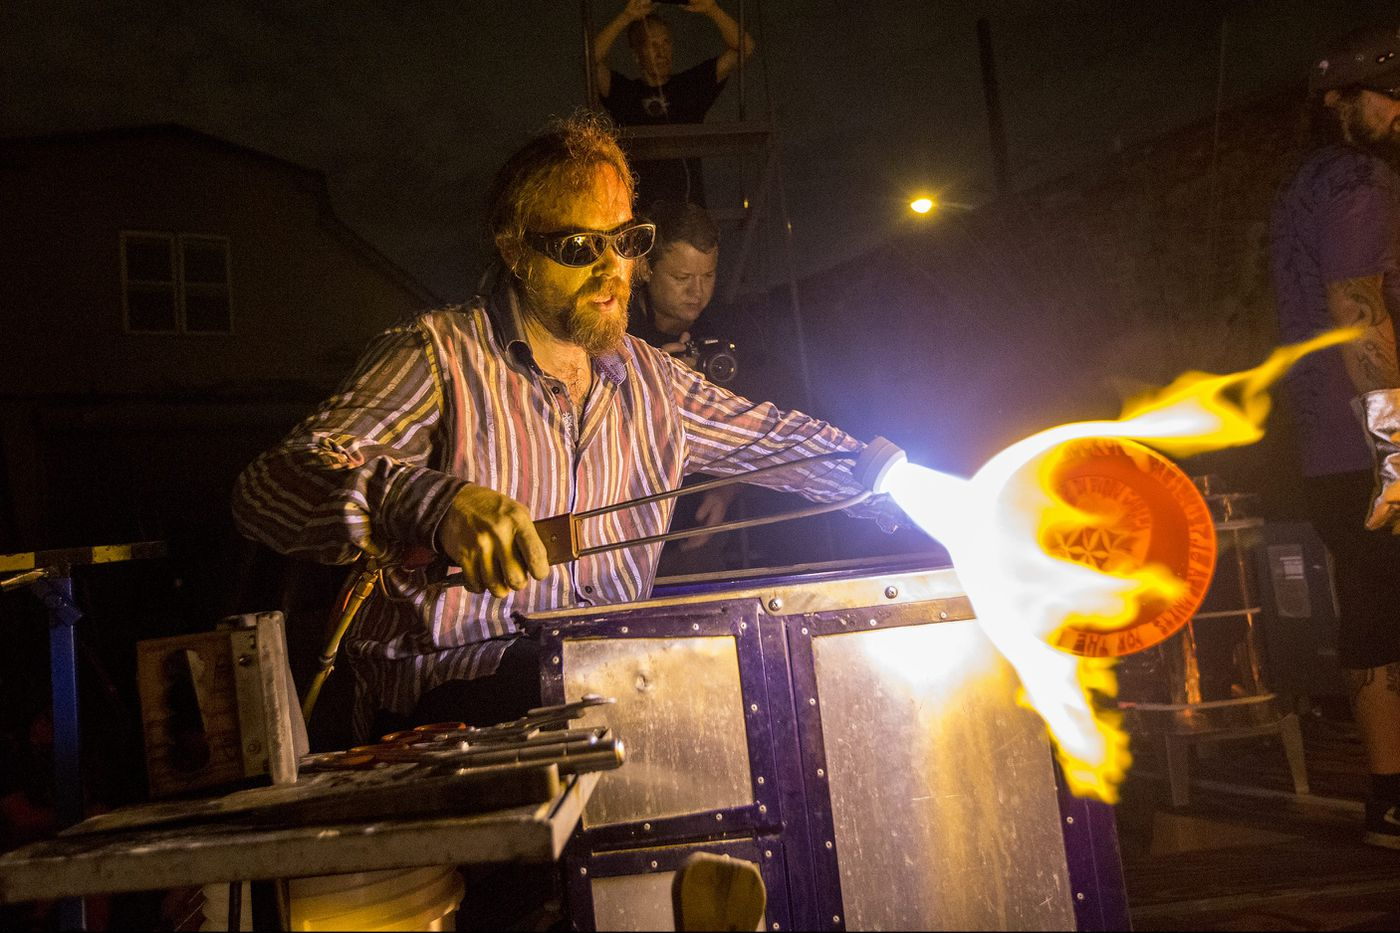 A famous glassmaker came to Philly to create his own form of currency